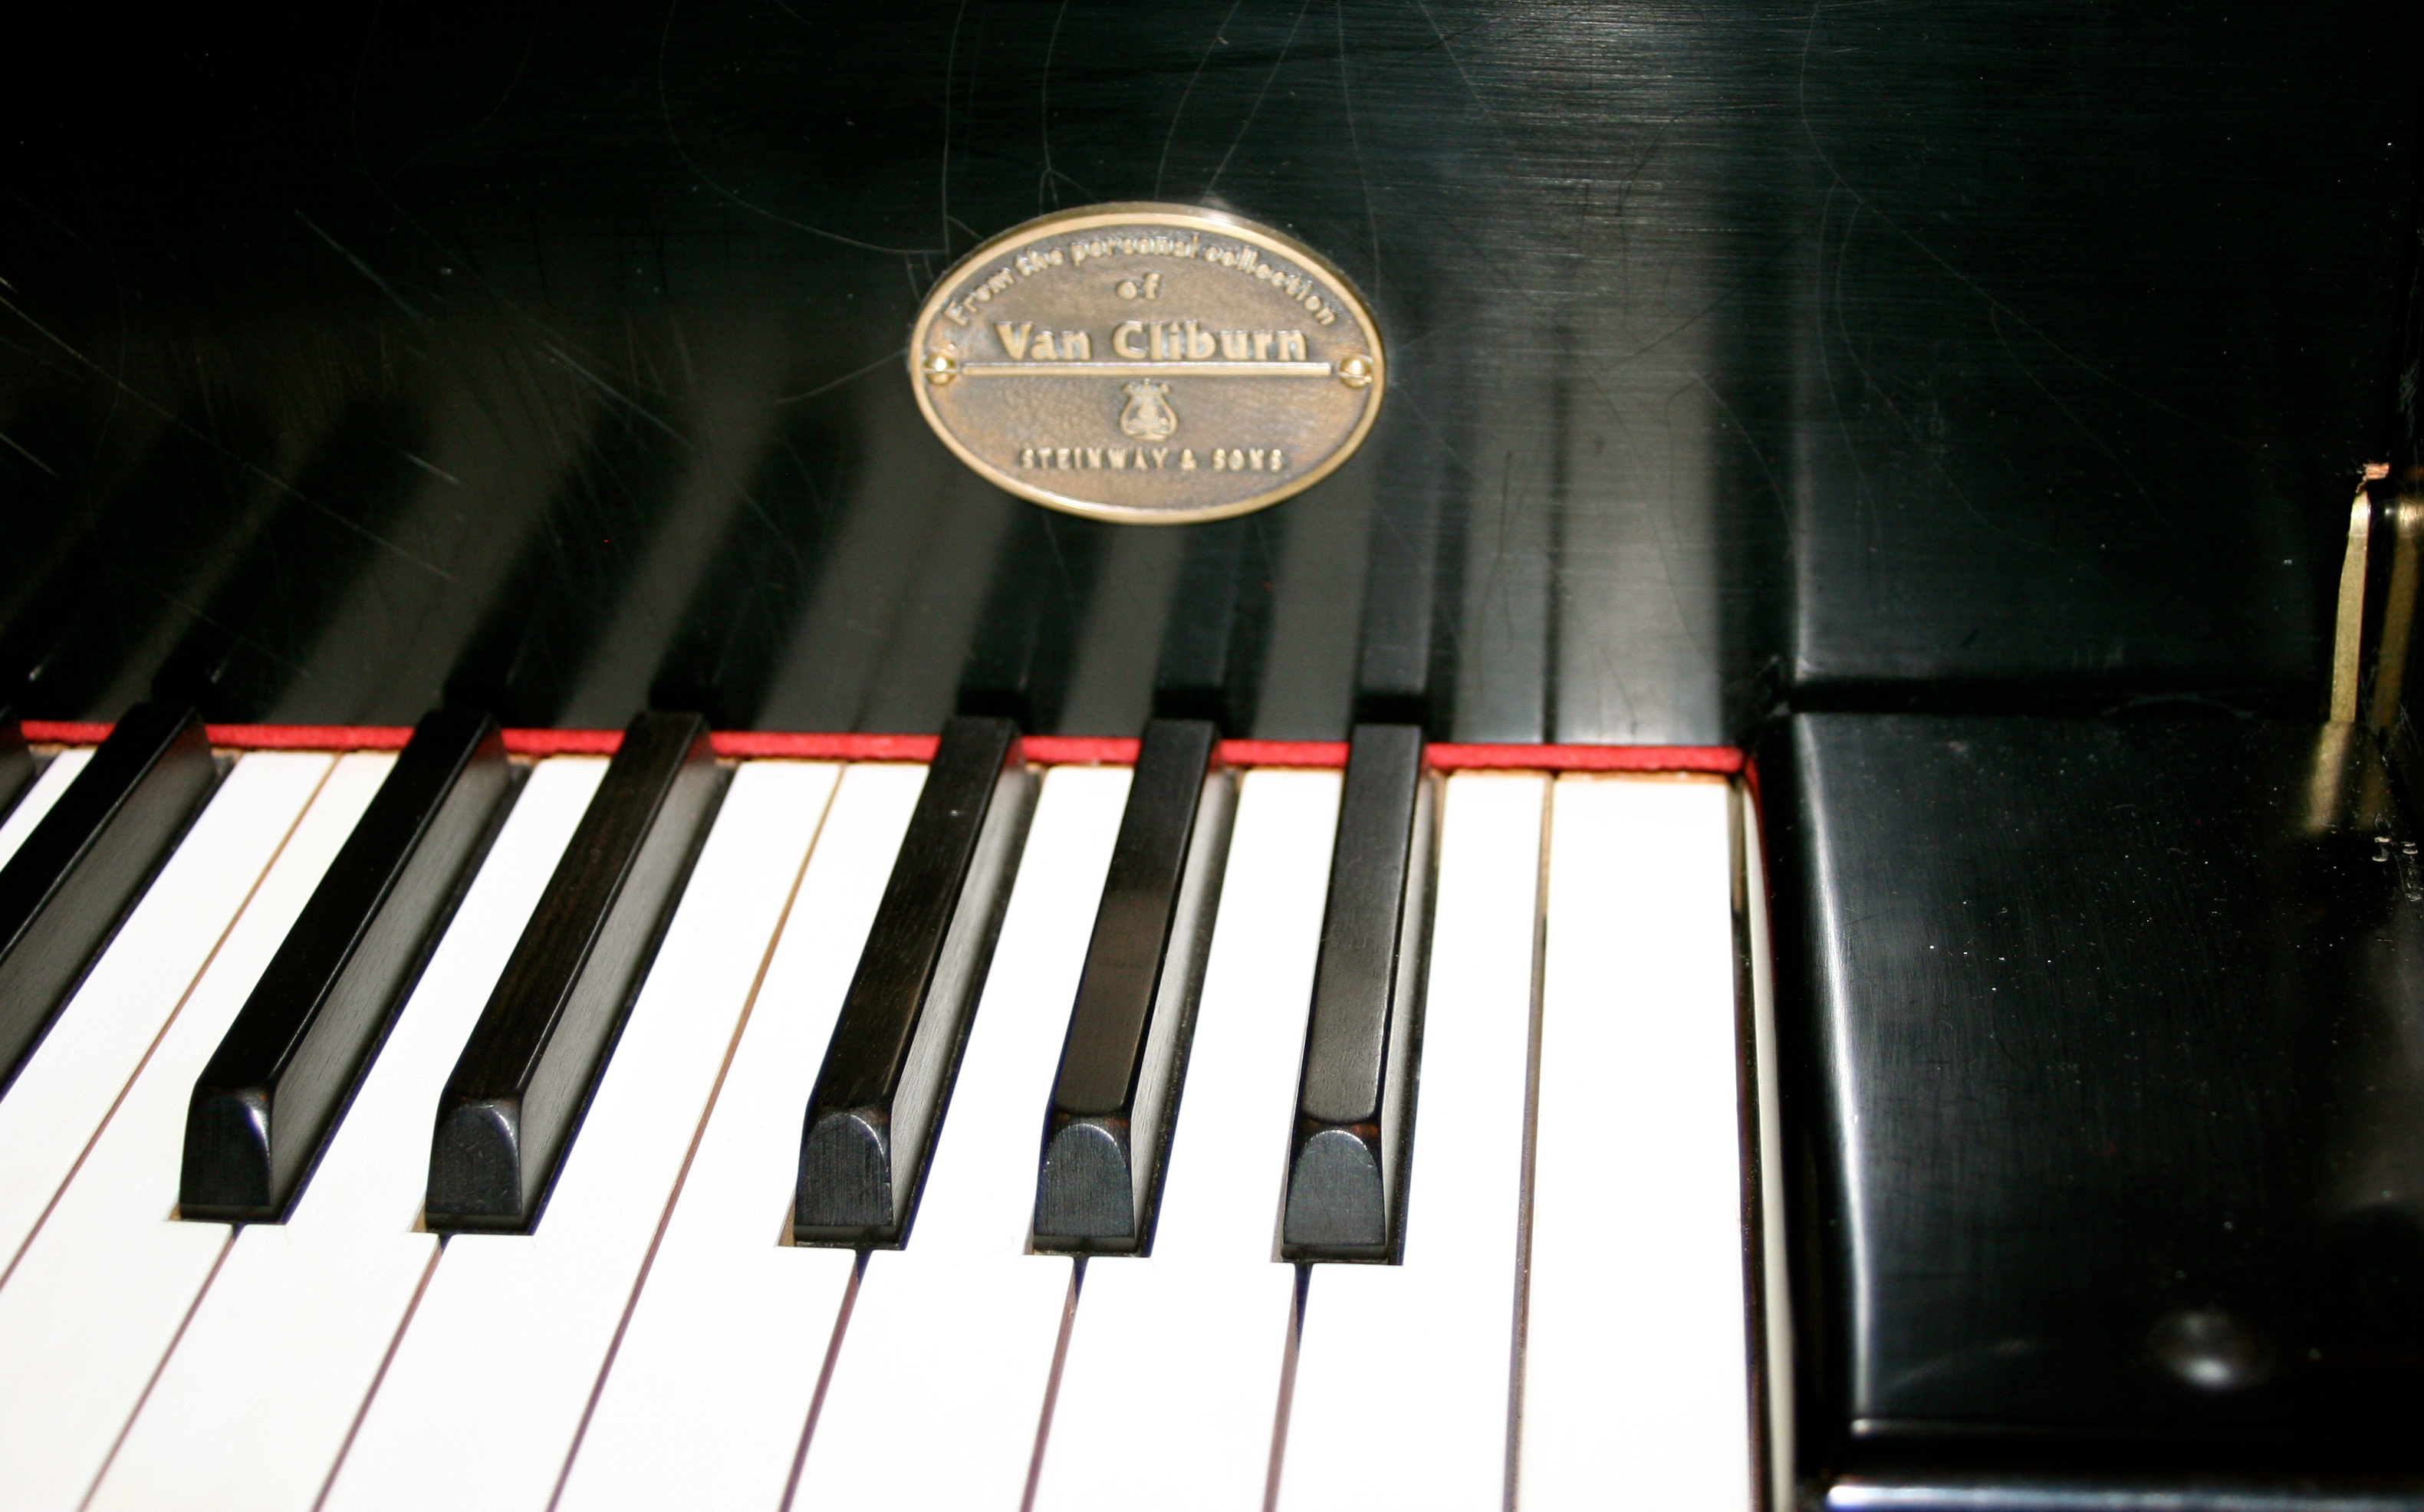 Van Cliburn's own piano, CD 375